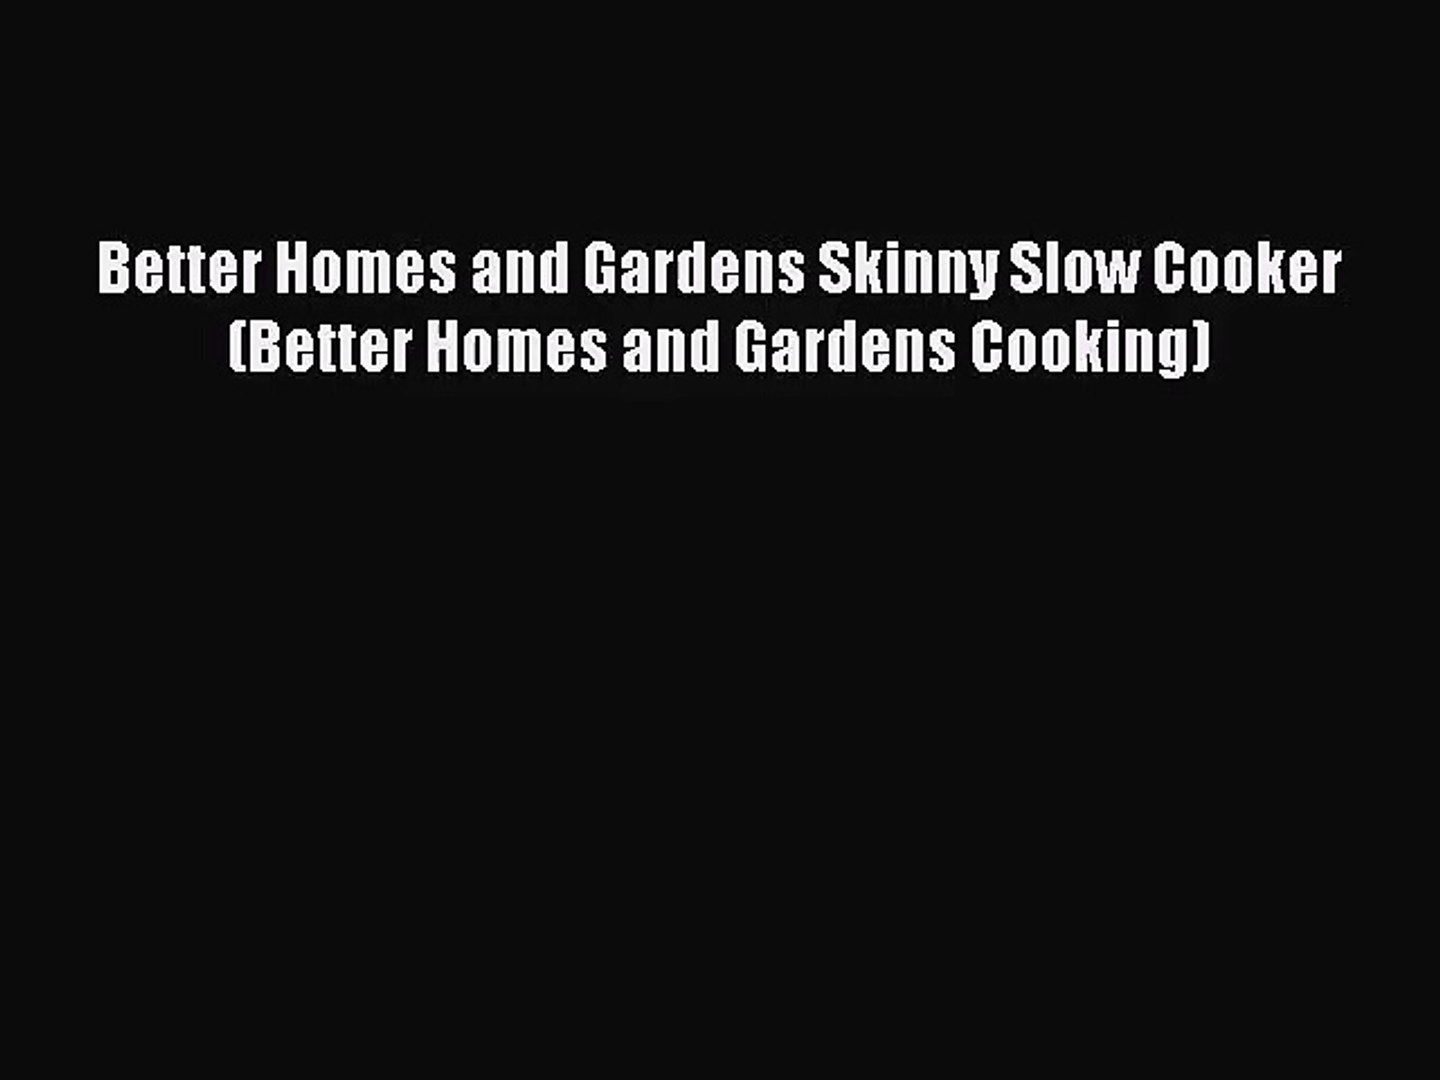 Better Homes and Gardens Skinny Slow Cooker (Better Homes and Gardens Cooking) Free Download